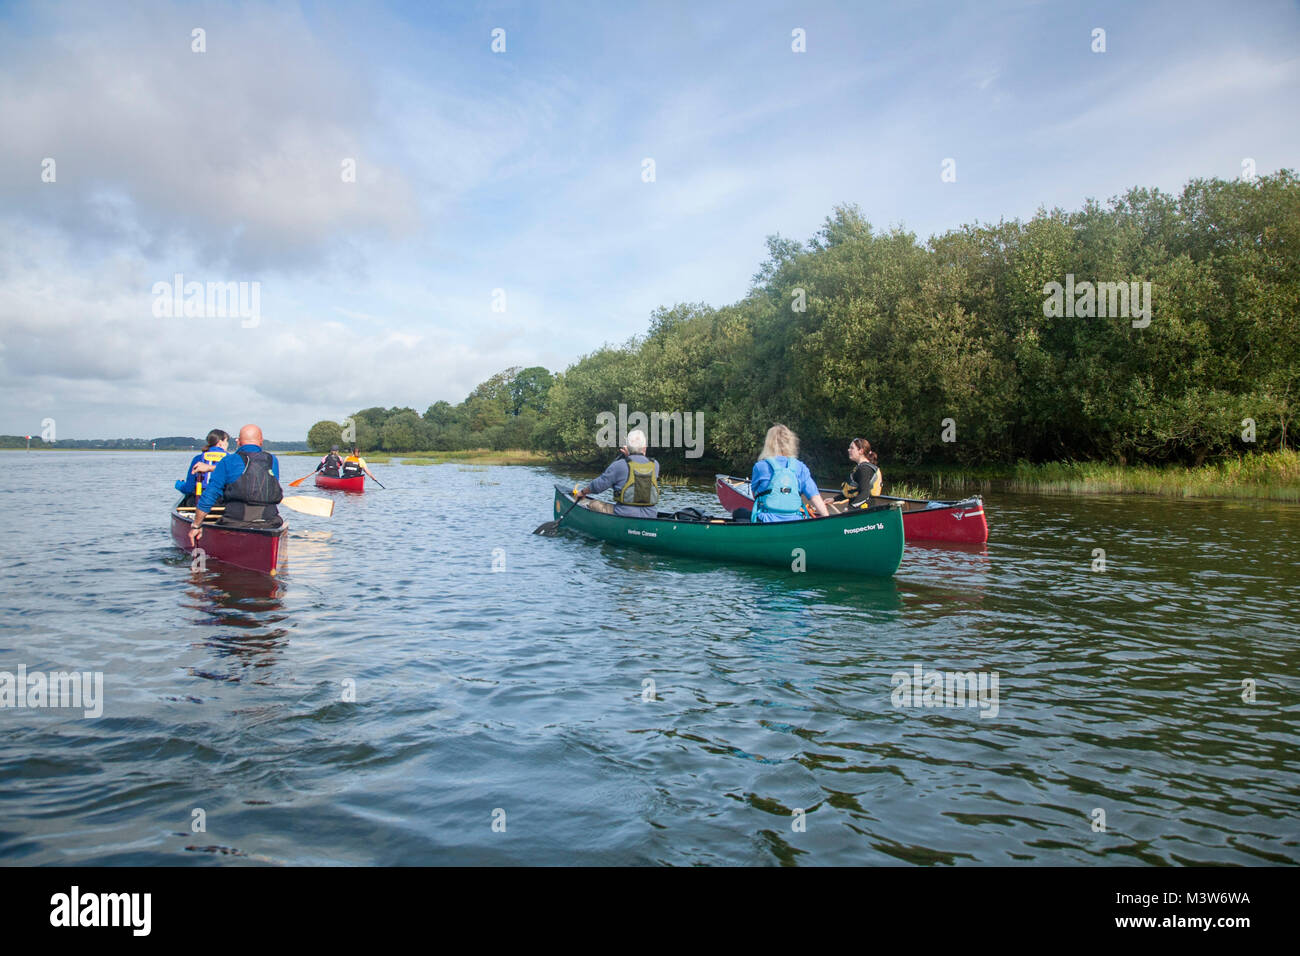 Canoeing on the River Bann near Toome, County Antrim, Northern Ireland. - Stock Image